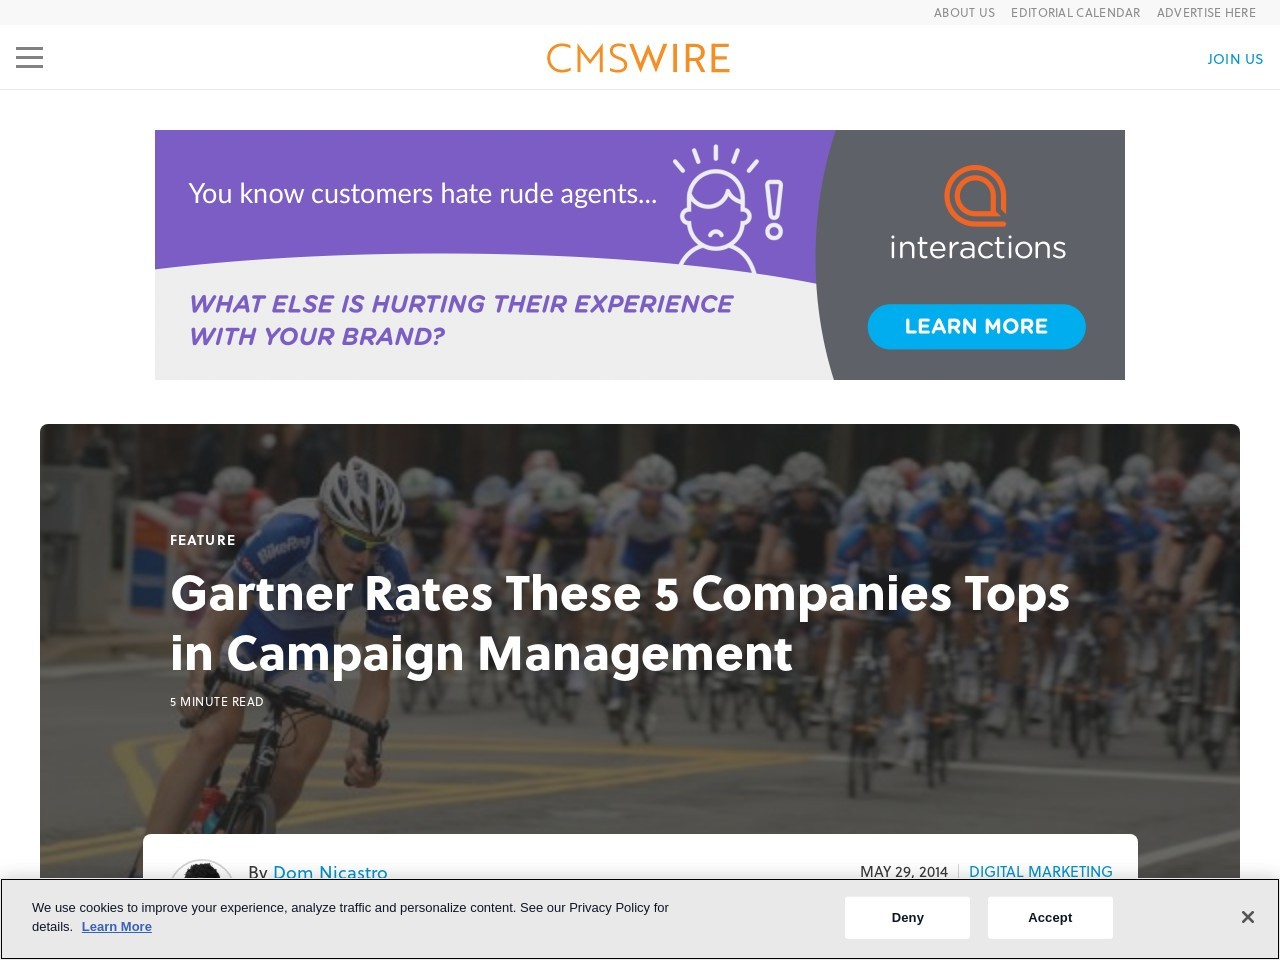 Gartner Rates These 5 Companies Tops in Campaign Management